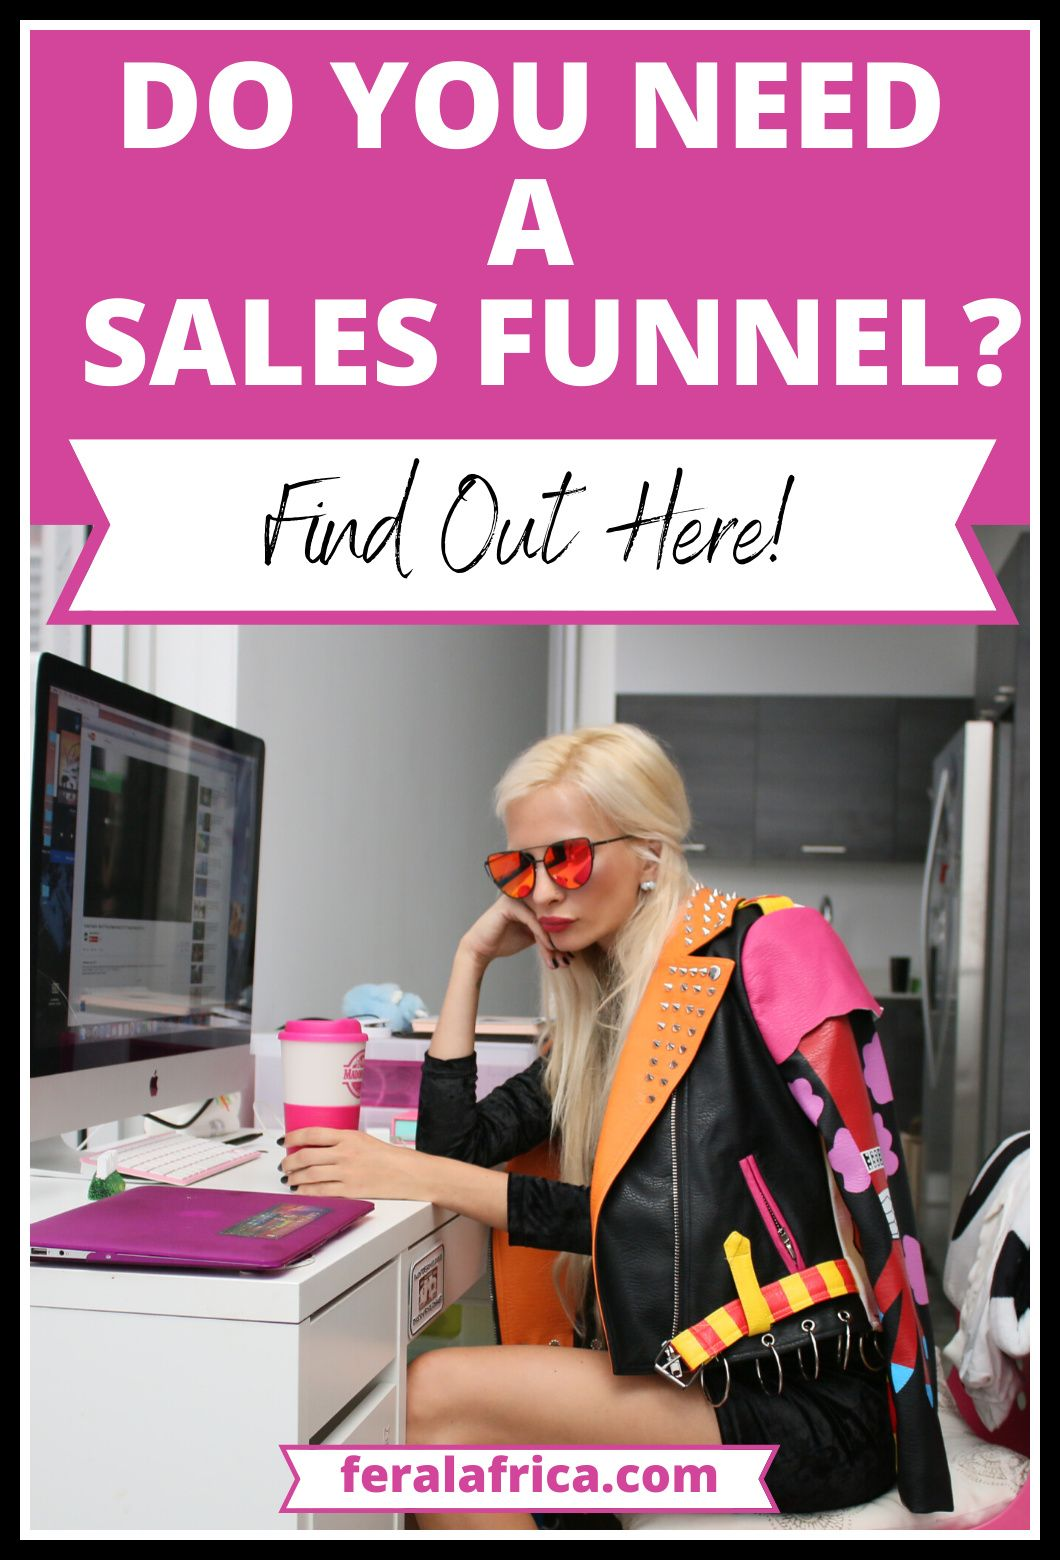 What Is Clickfunnels About ? What Does It Do? Why Should